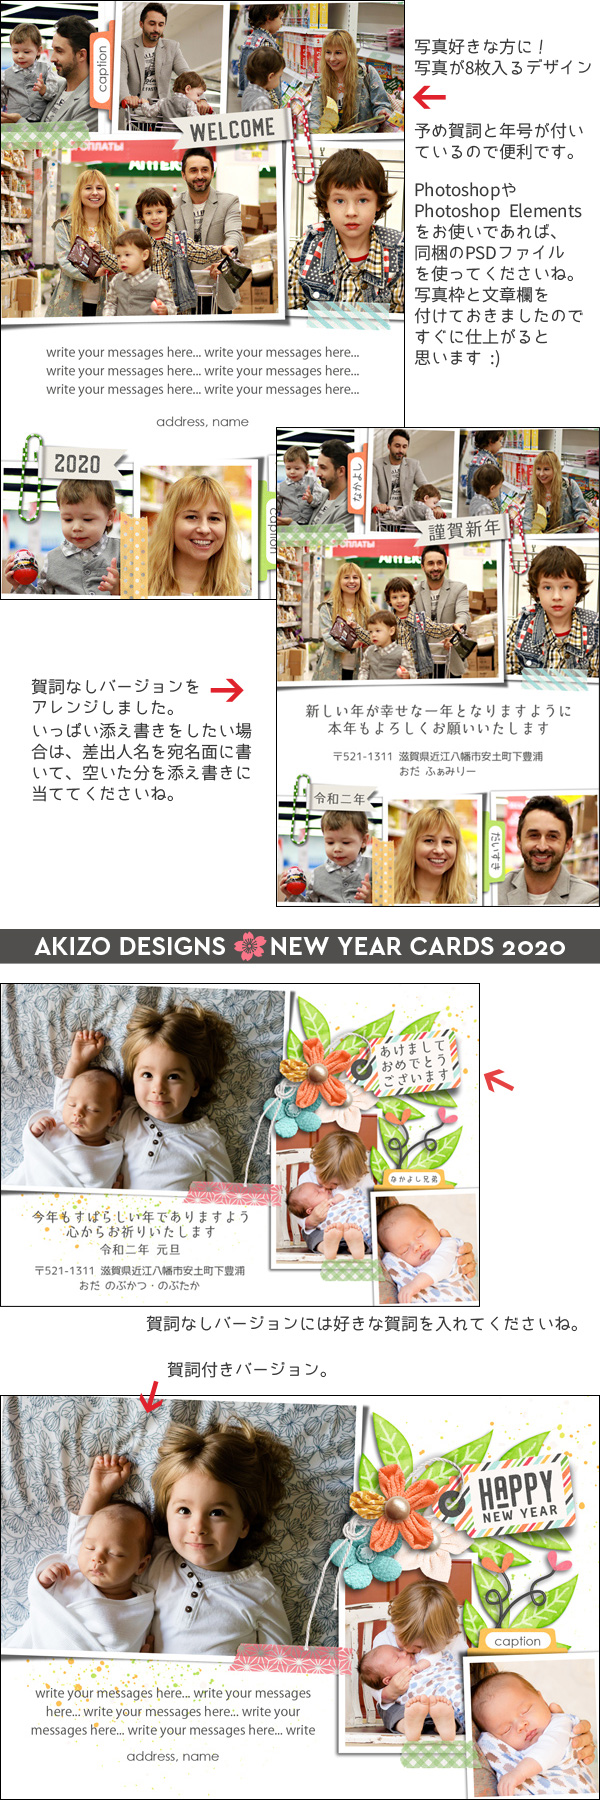 Layout Sample of New Year Greetings 2020